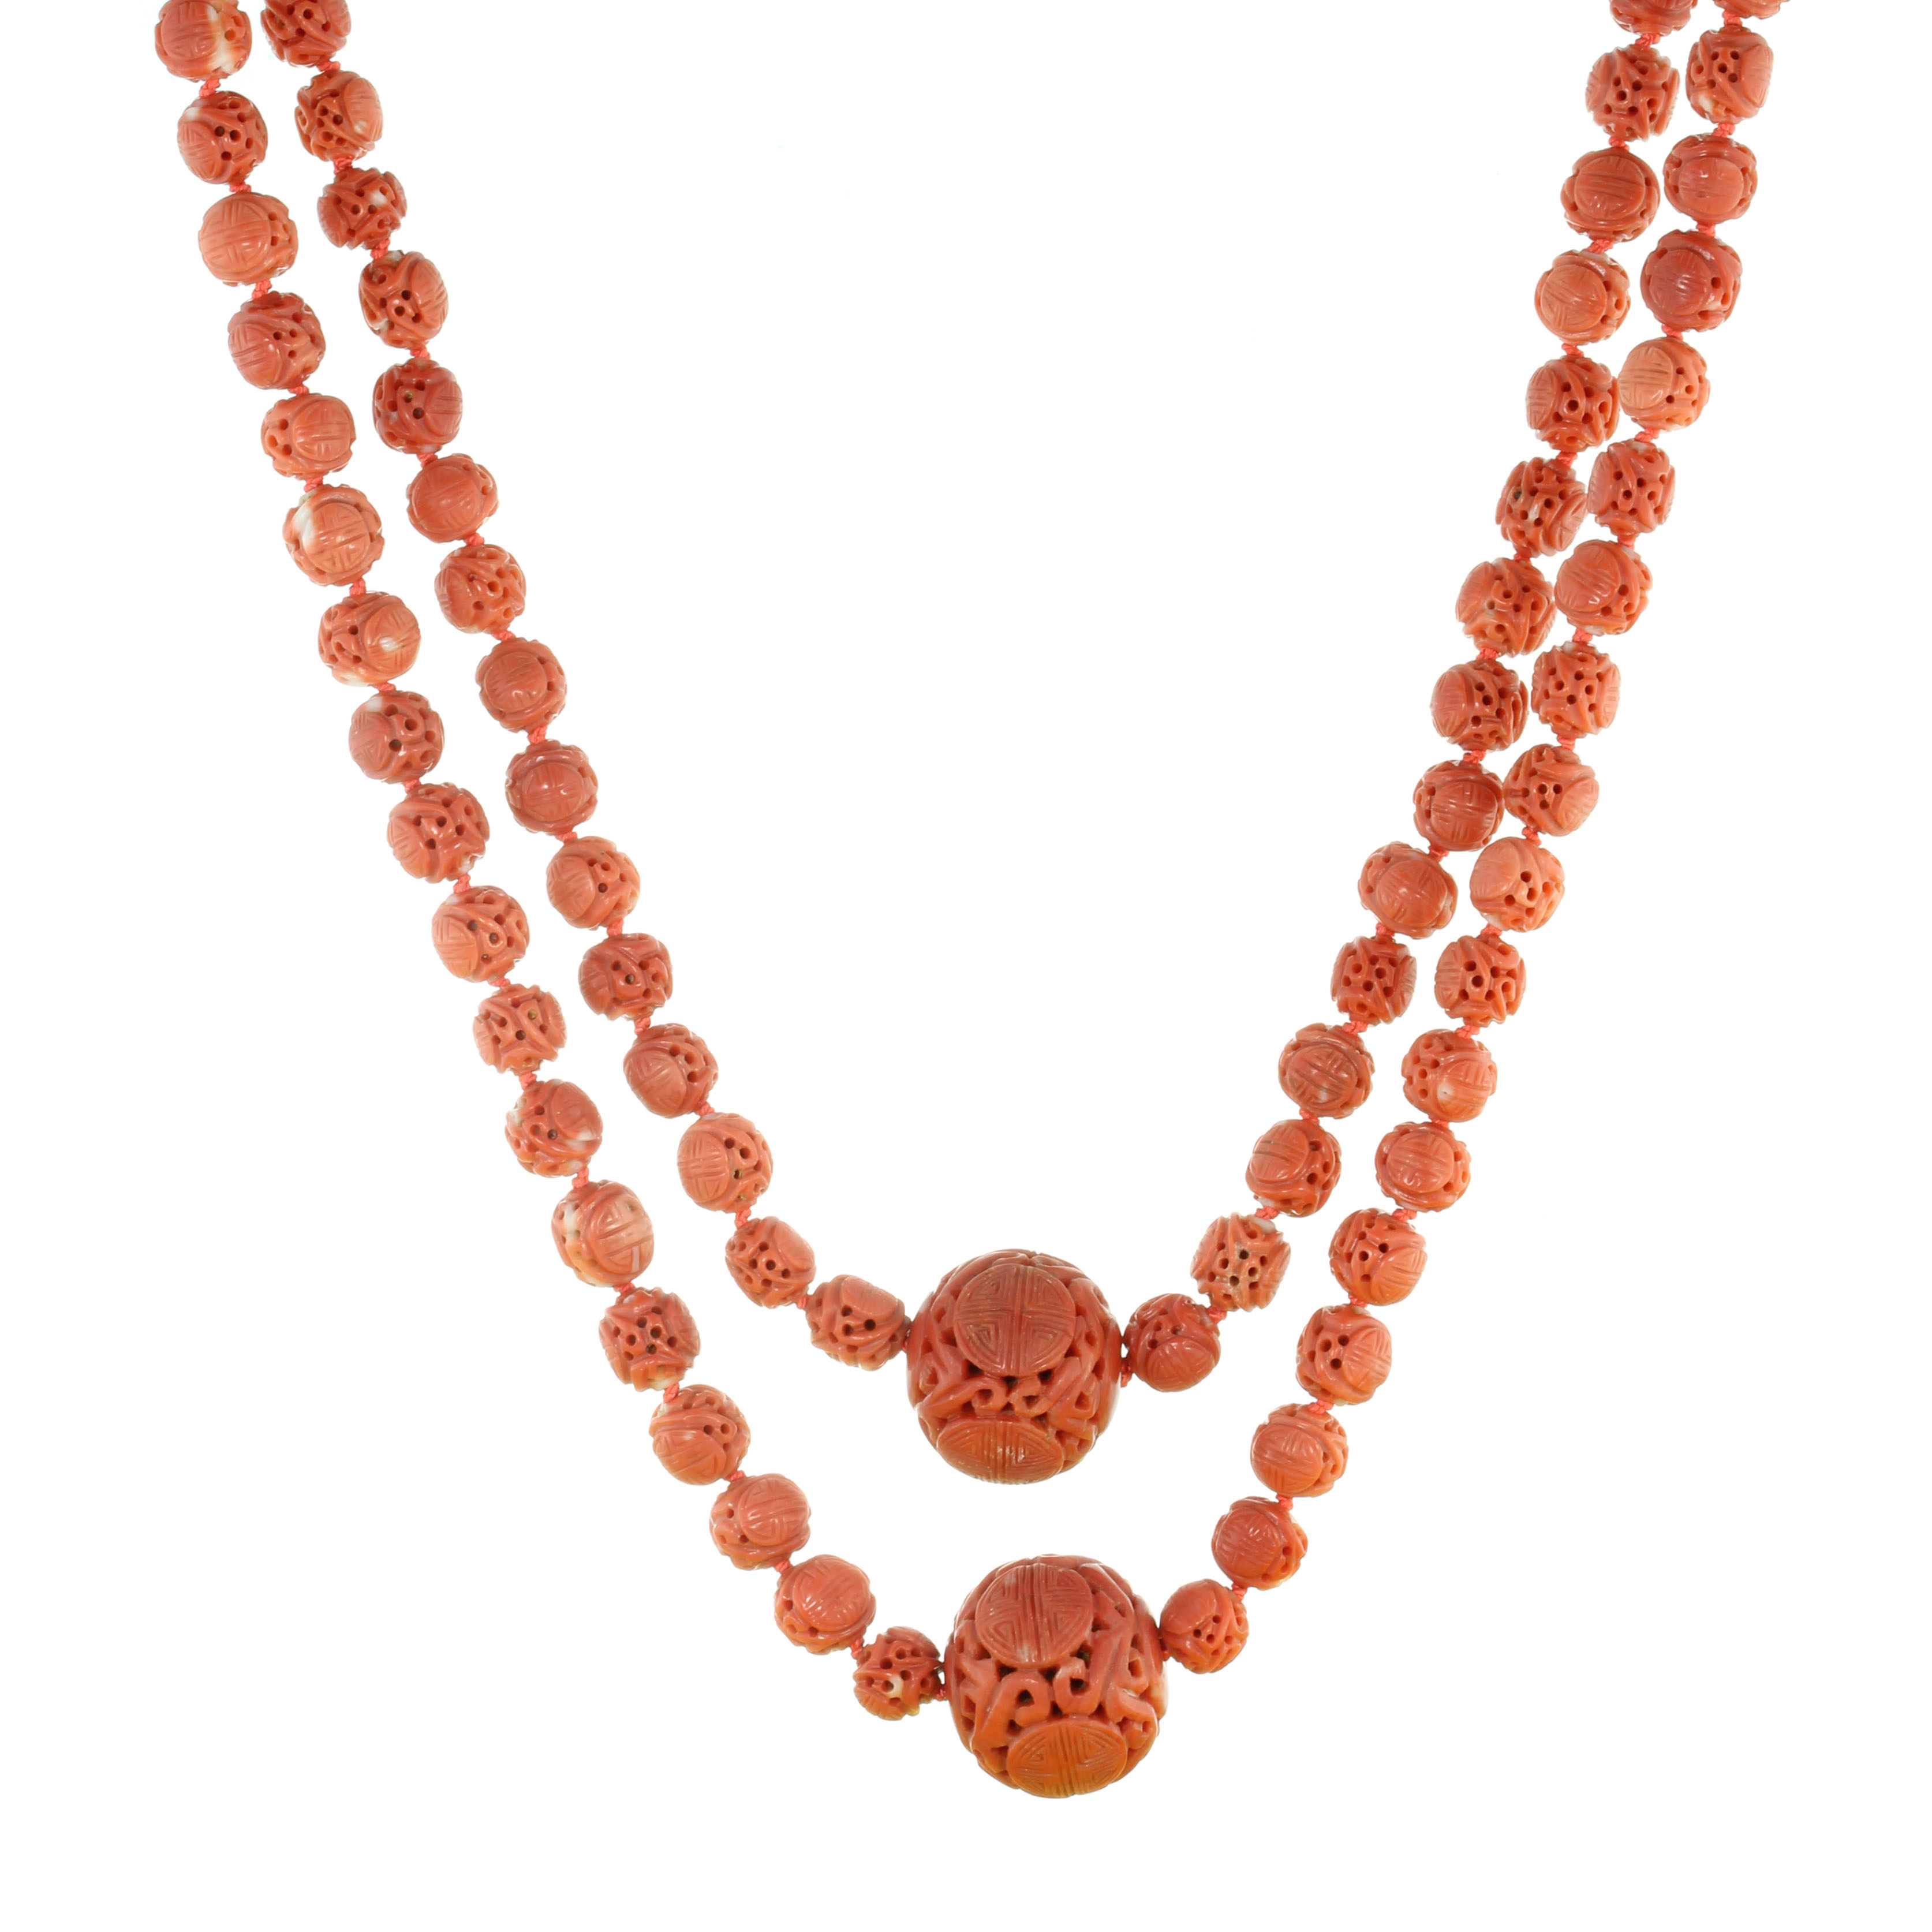 Los 19 - AN ANTIQUE CHINESE CARVED CORAL BEAD NECKLACE comprising four large beads of 21-24mm within a